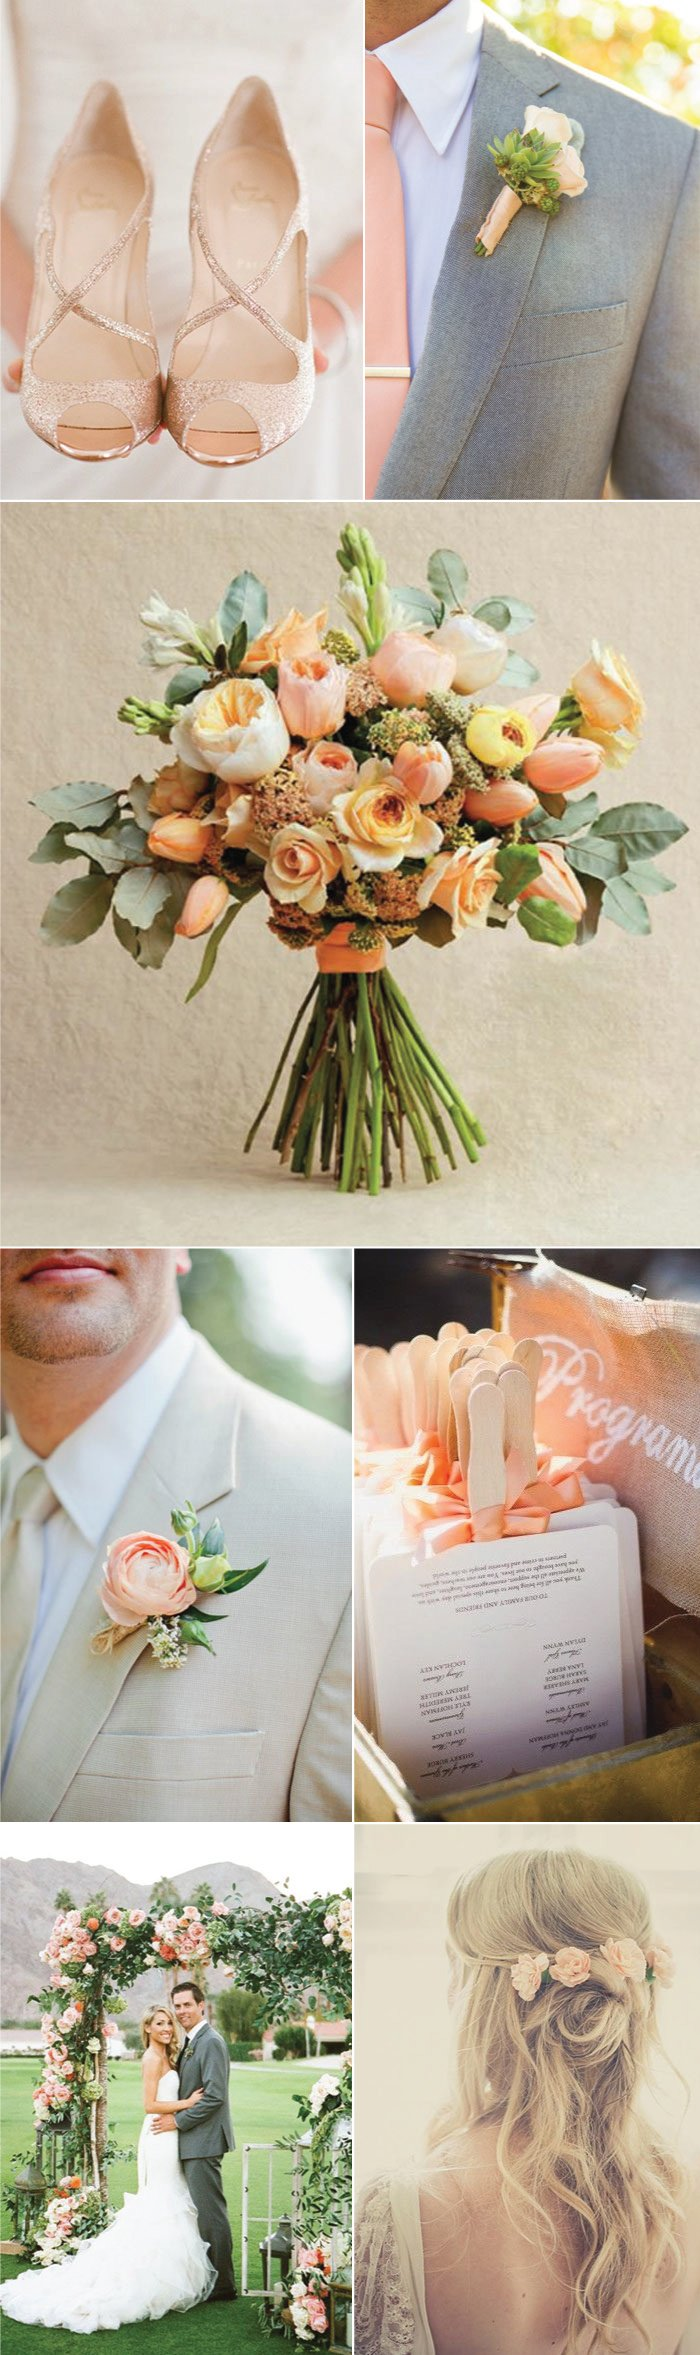 Wedding in Weathered Rose